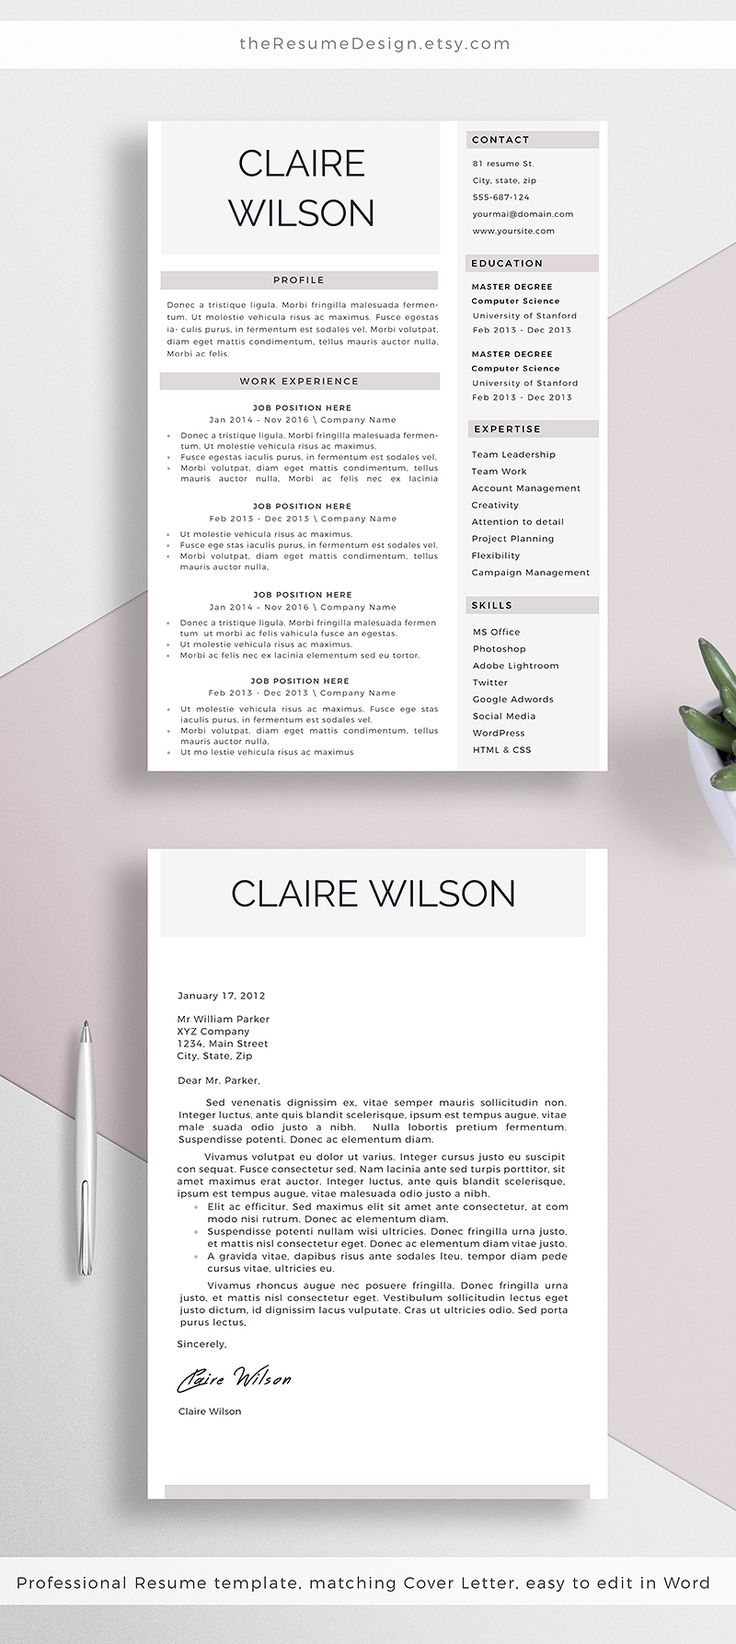 Professional Resume Template + Cover Letter For Word, Creative CV Design,  Instant Download, A4 Size, Curriculum Vitae Template